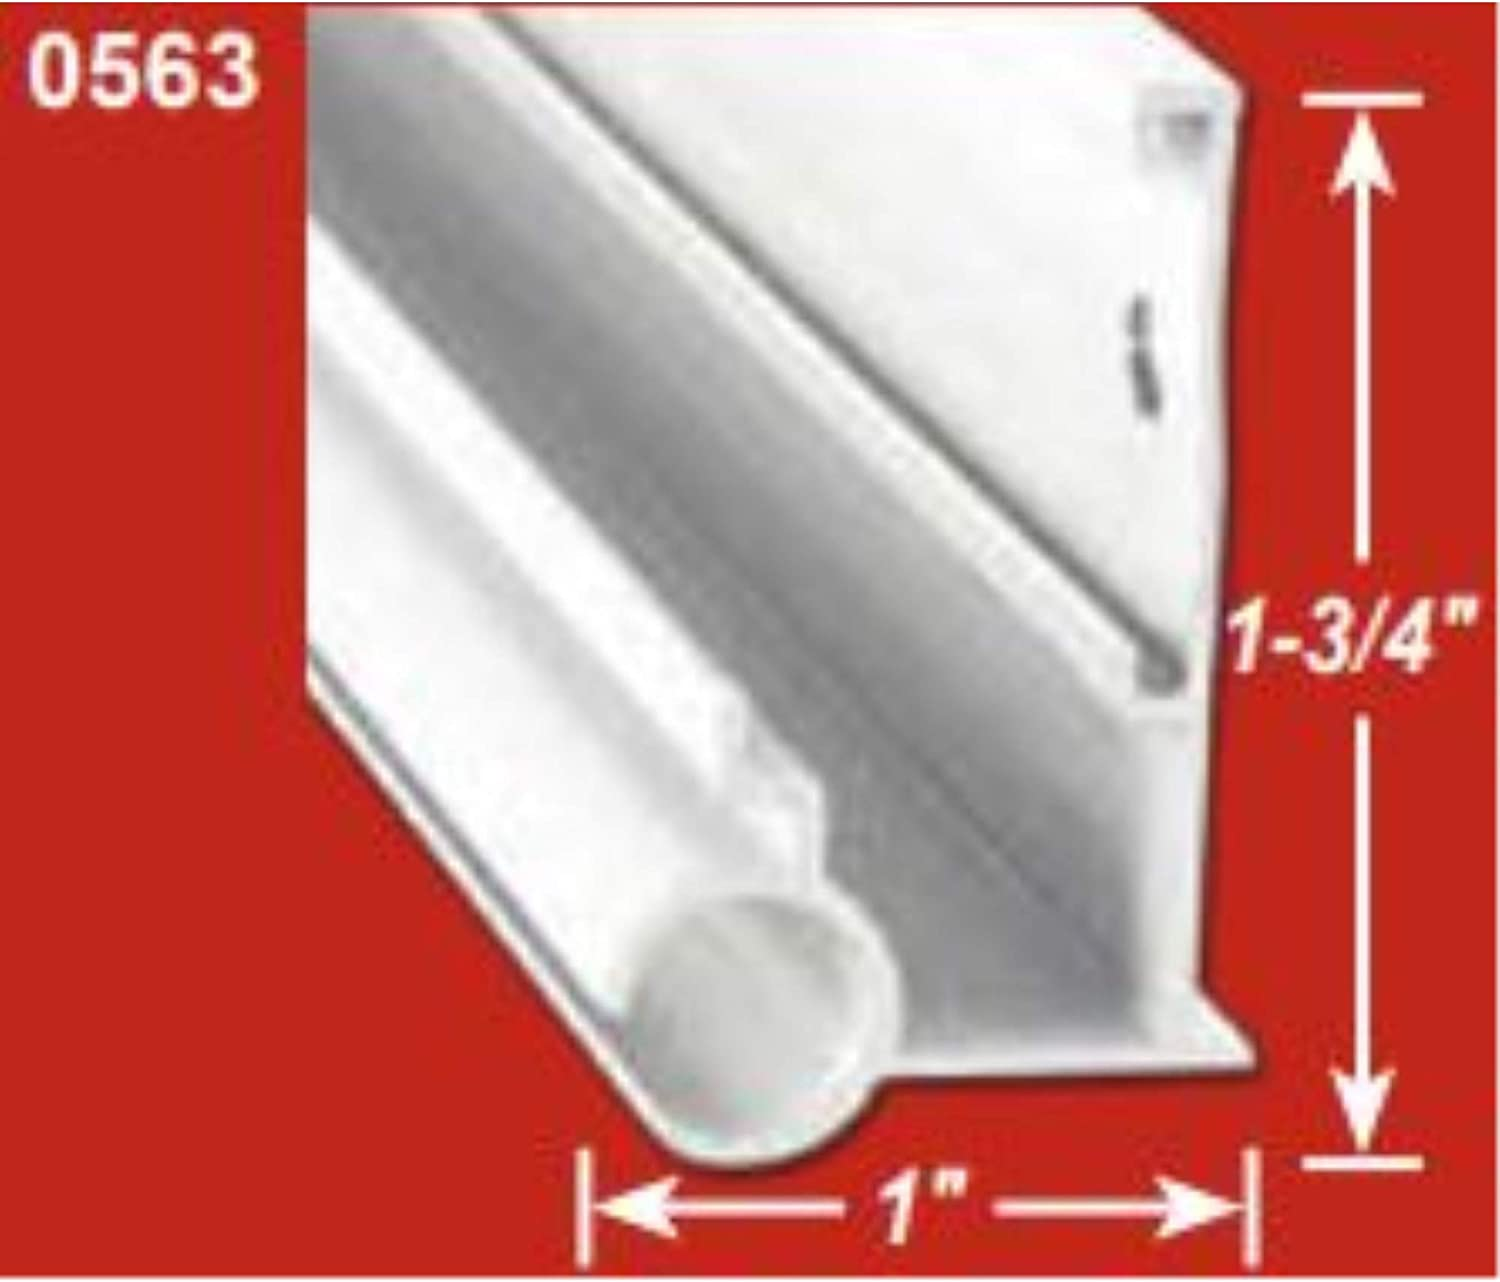 AP Products 021-51001-8 Insert Awning Rail 8 5 Pack